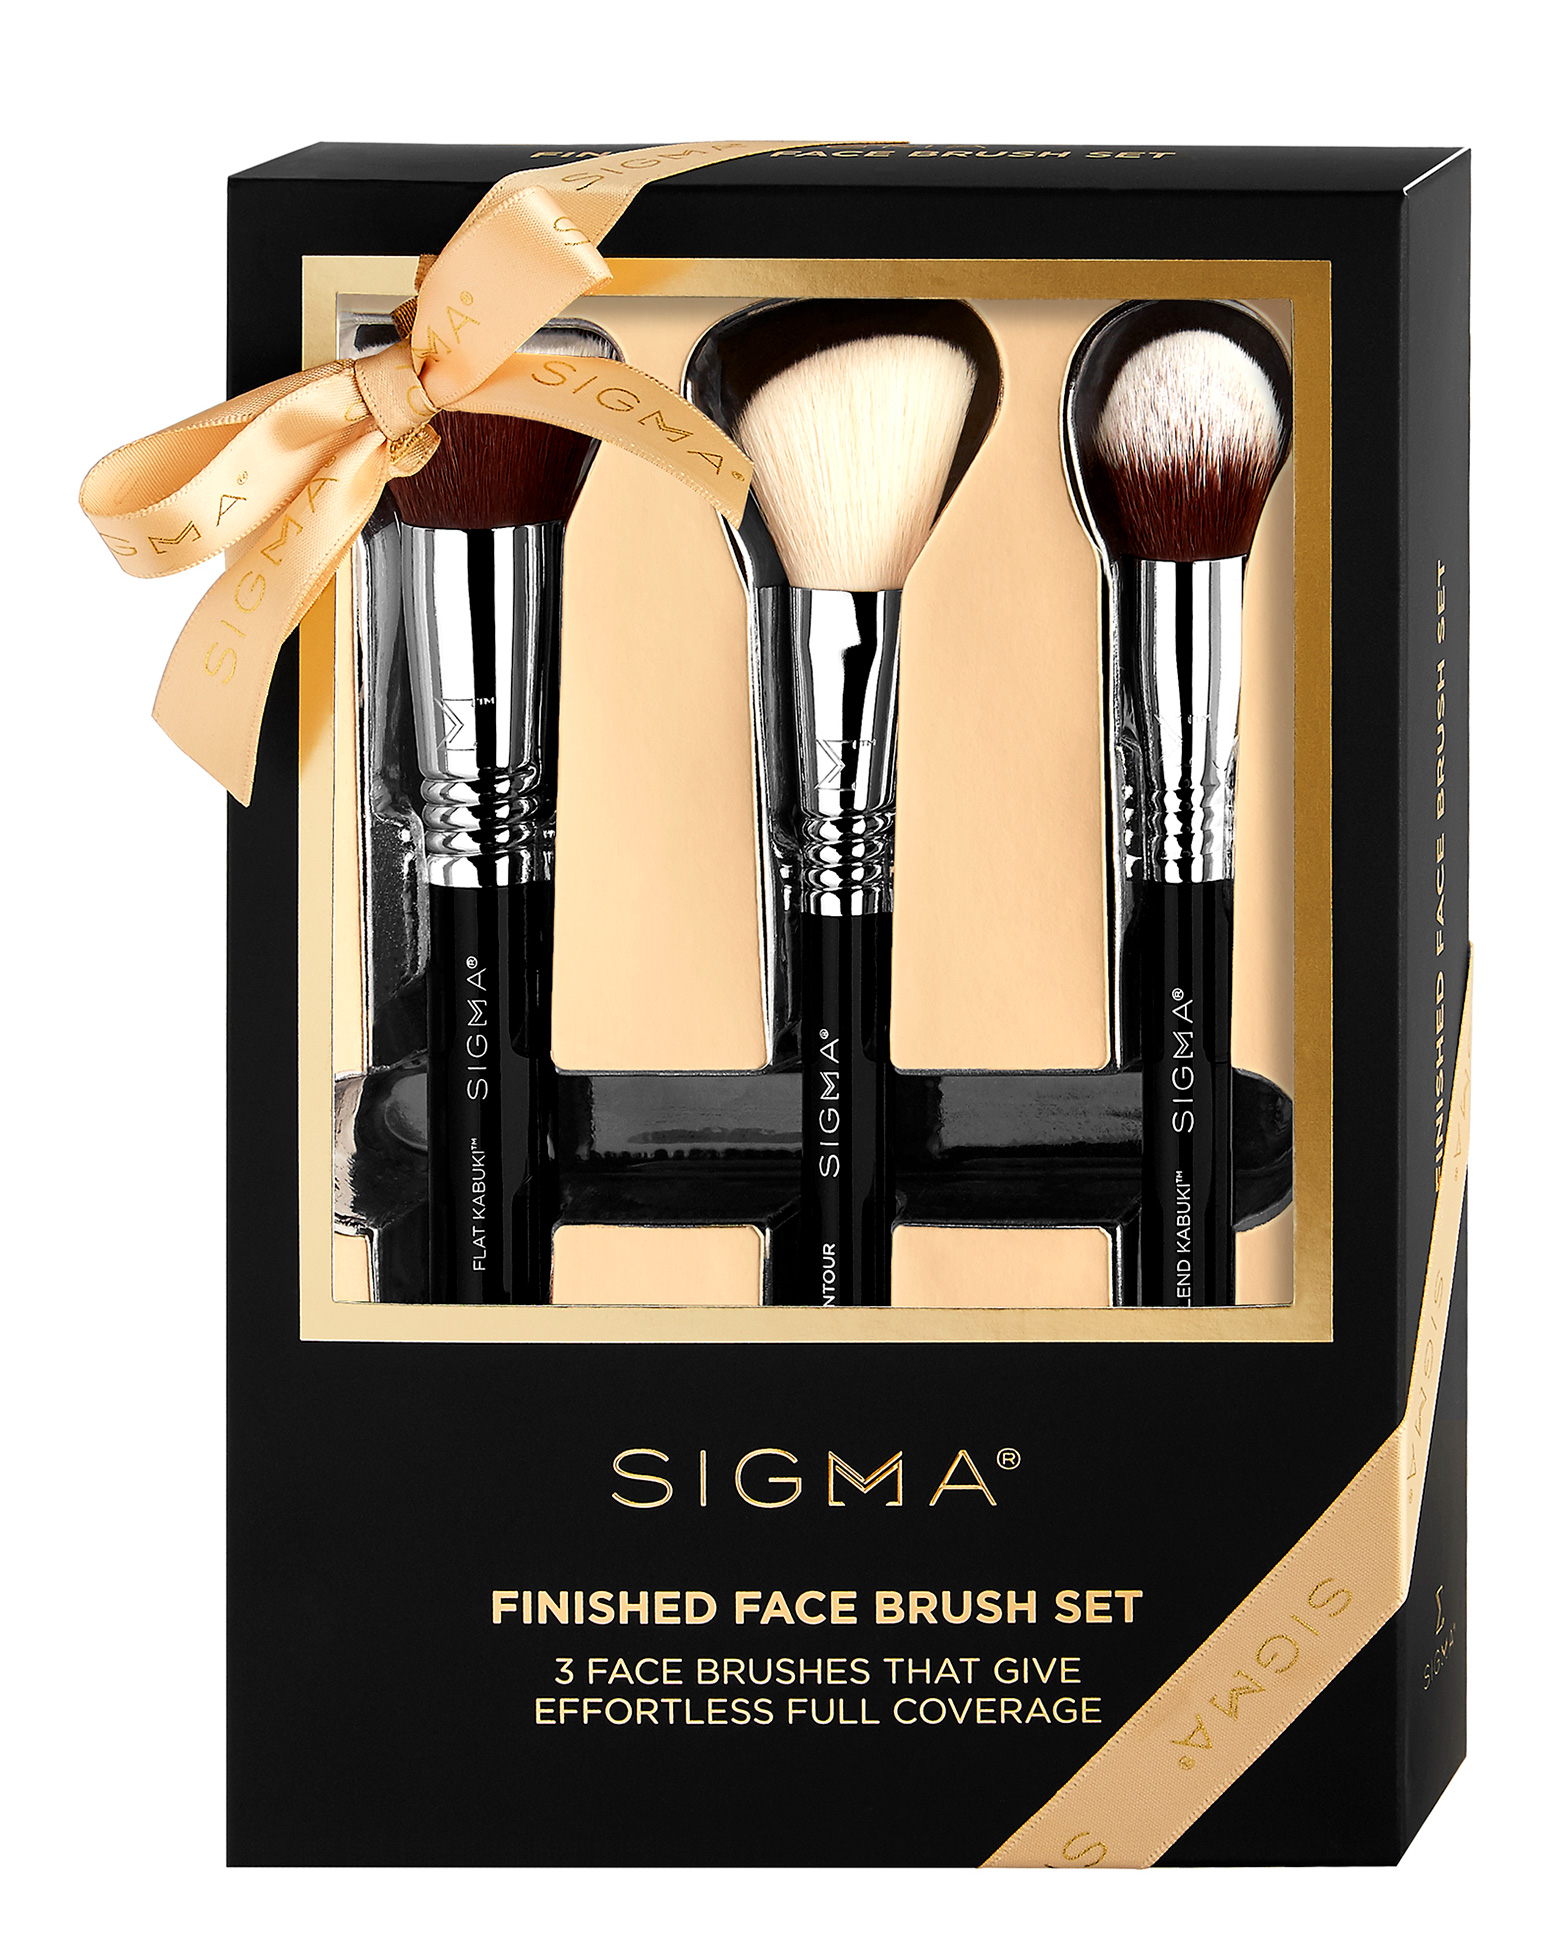 7 Gorgeous Sigma Beauty Gifts for Christmas 2015 recommendations